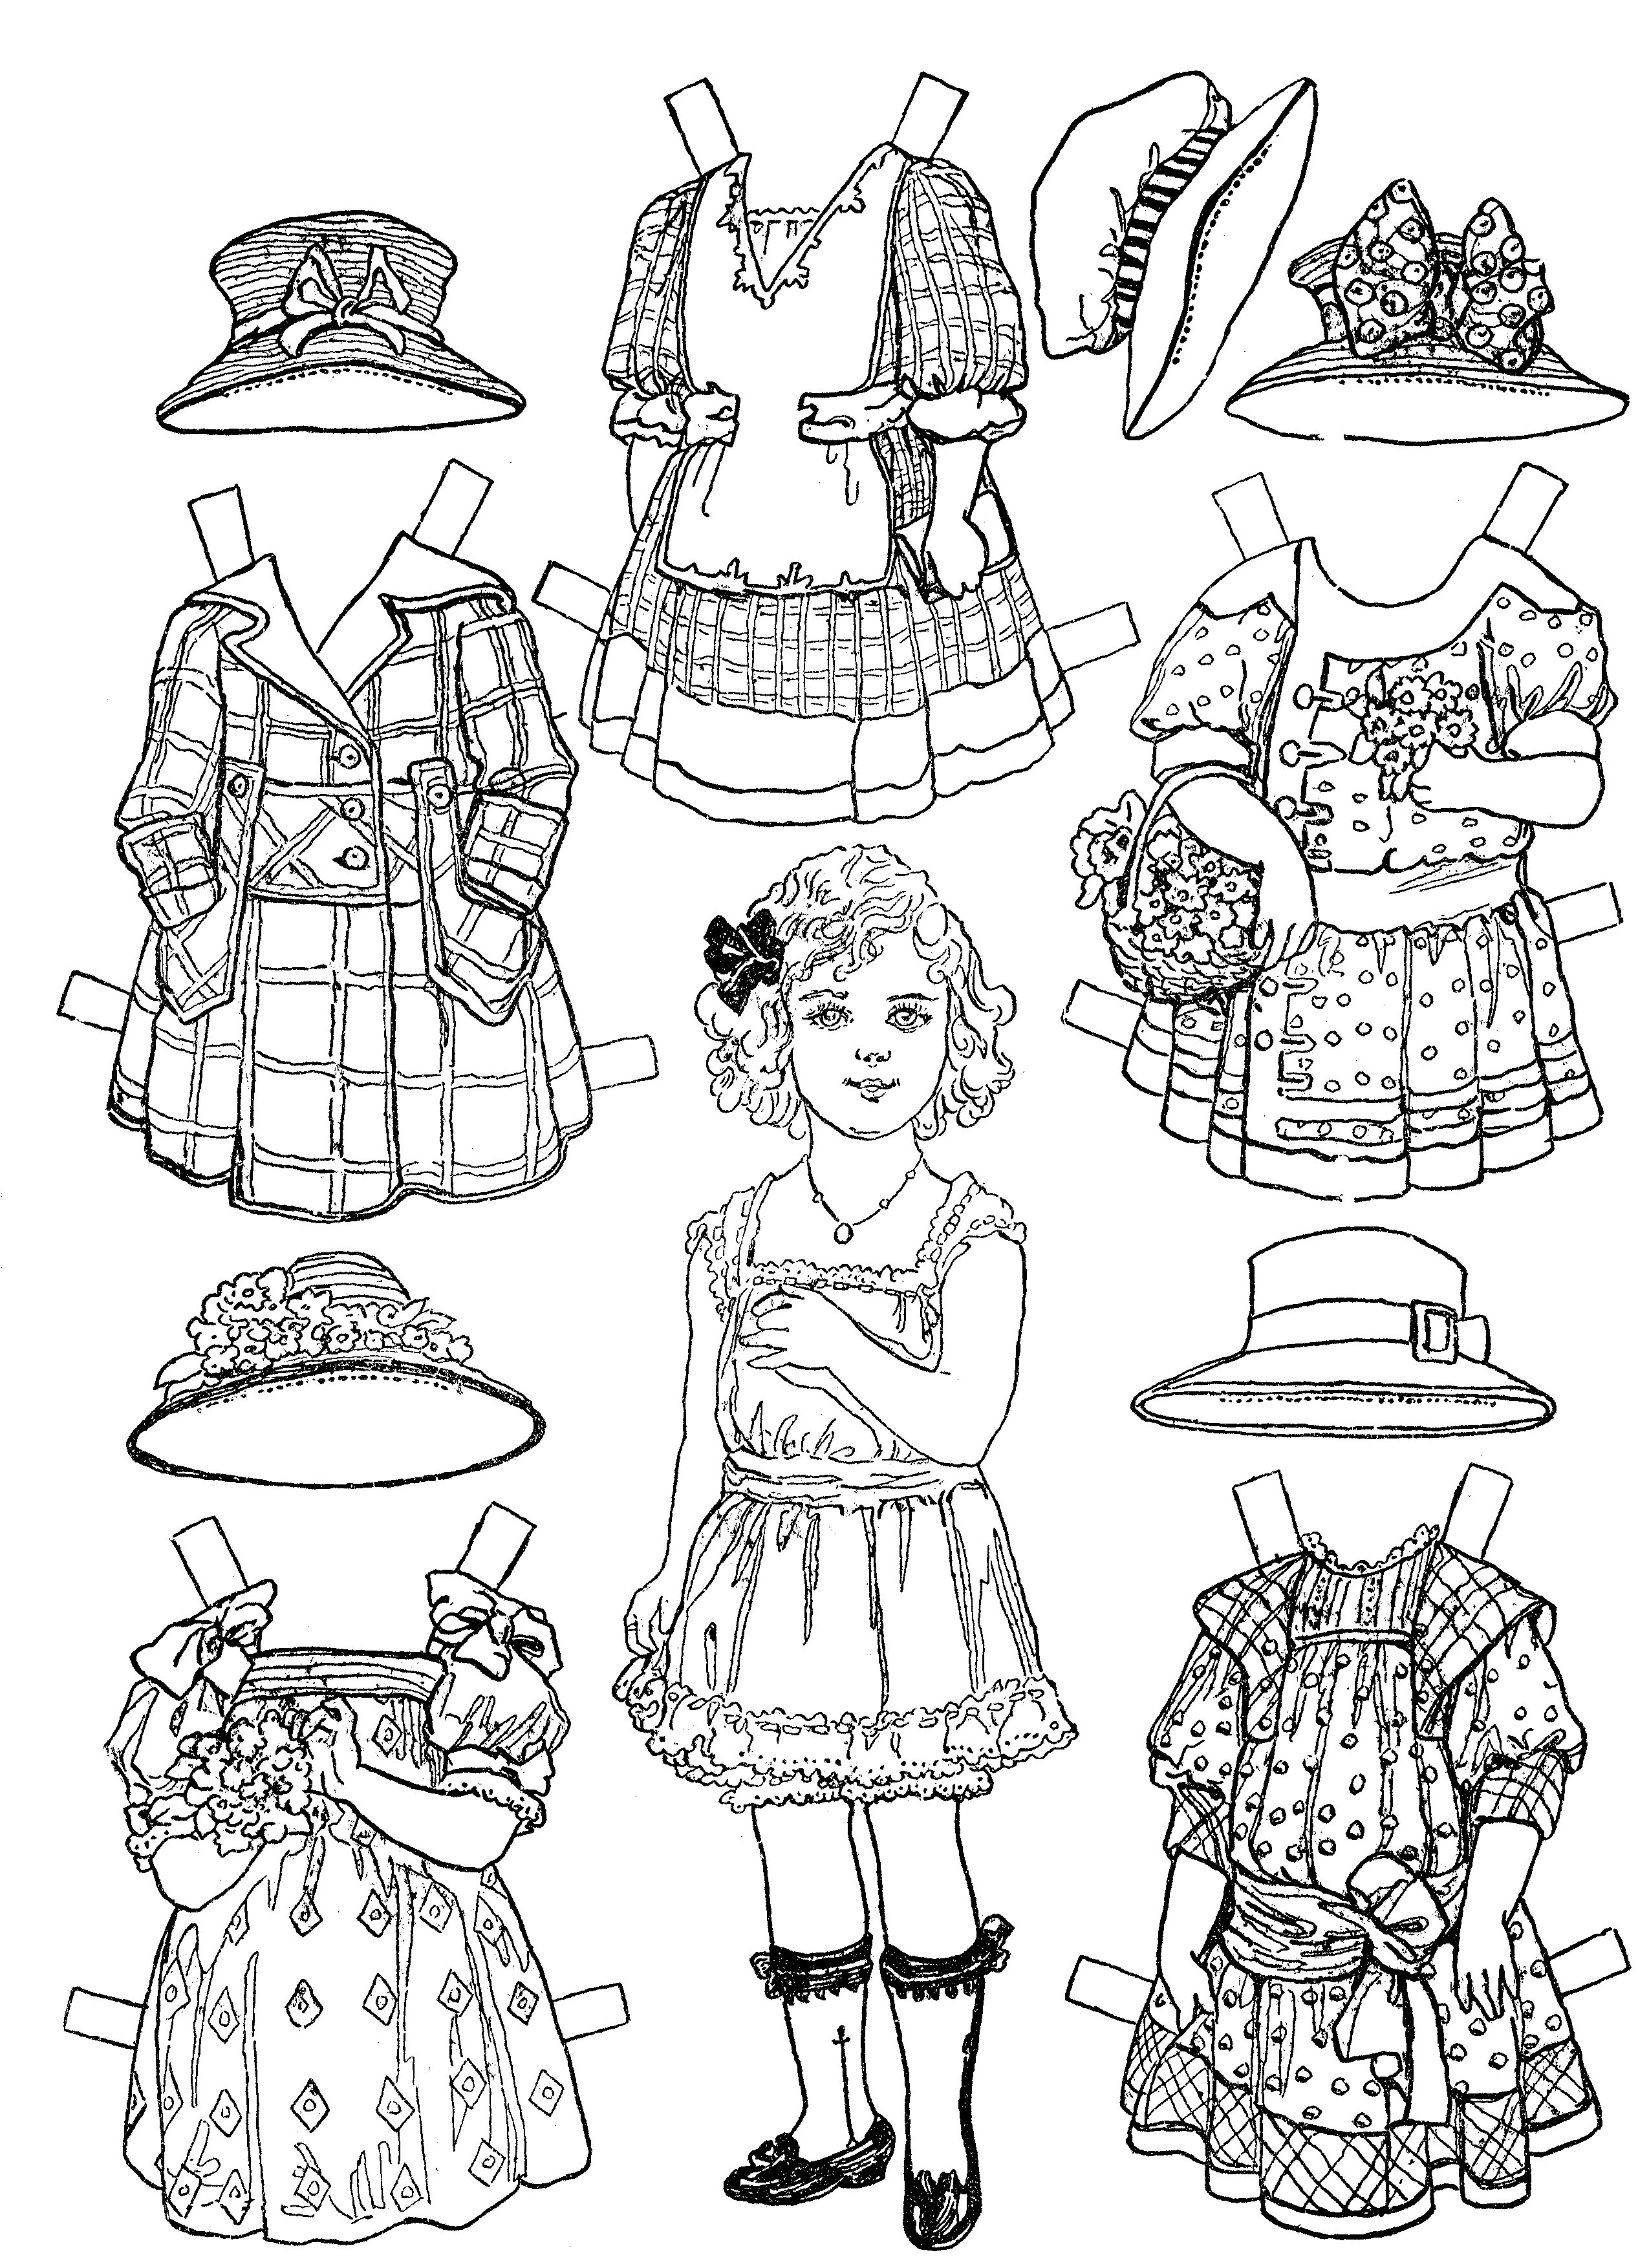 coloring doll print dolls coloring pages print doll coloring 1 1